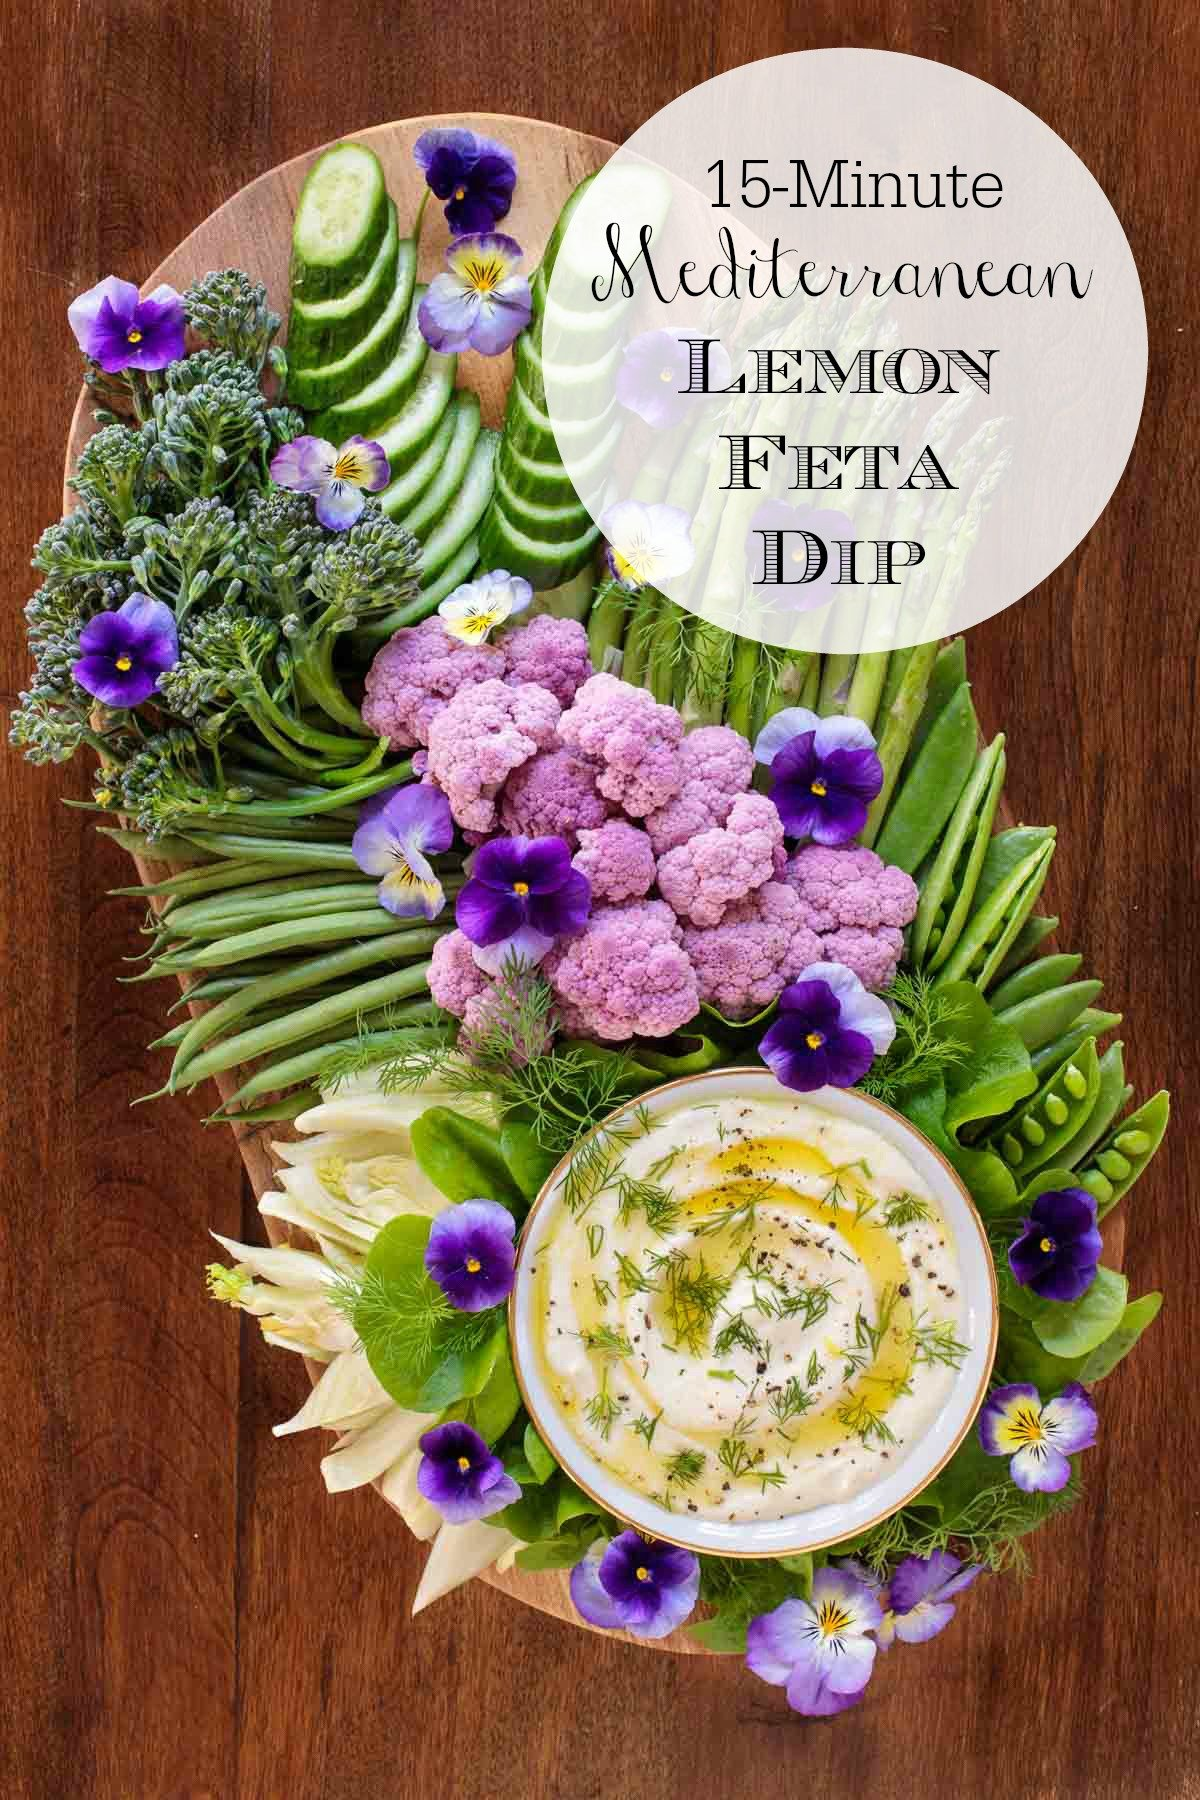 This creamy, lemony Feta dip is perfect for parties, picnics and potlucks. Serve it with raw veggies or chips for a delicious appetizer or snack! #fetadip, #whippedfetadip, #easyveggiedip, #creamydip, #healthydip